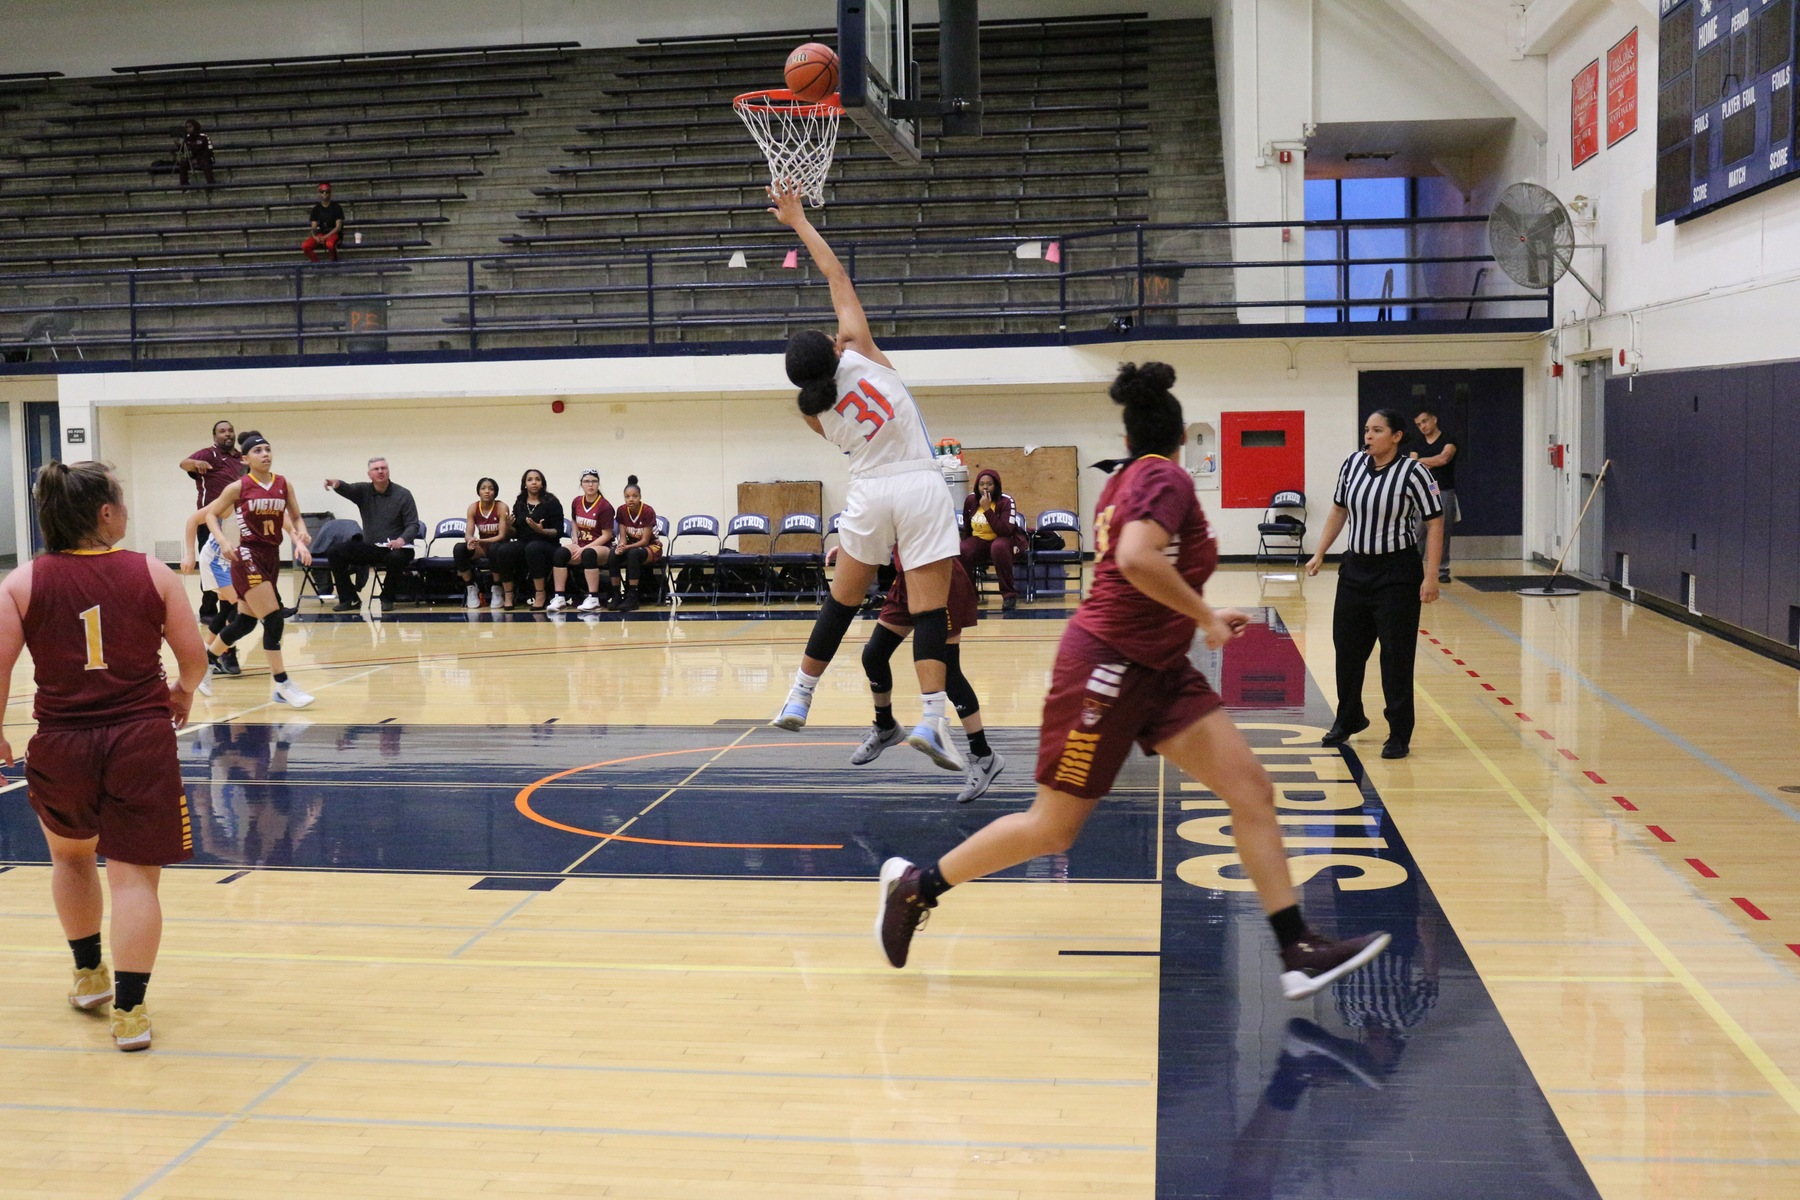 Kyannie Brown finishes the fast break with a layup. Image: Treyvon Watts-Hale